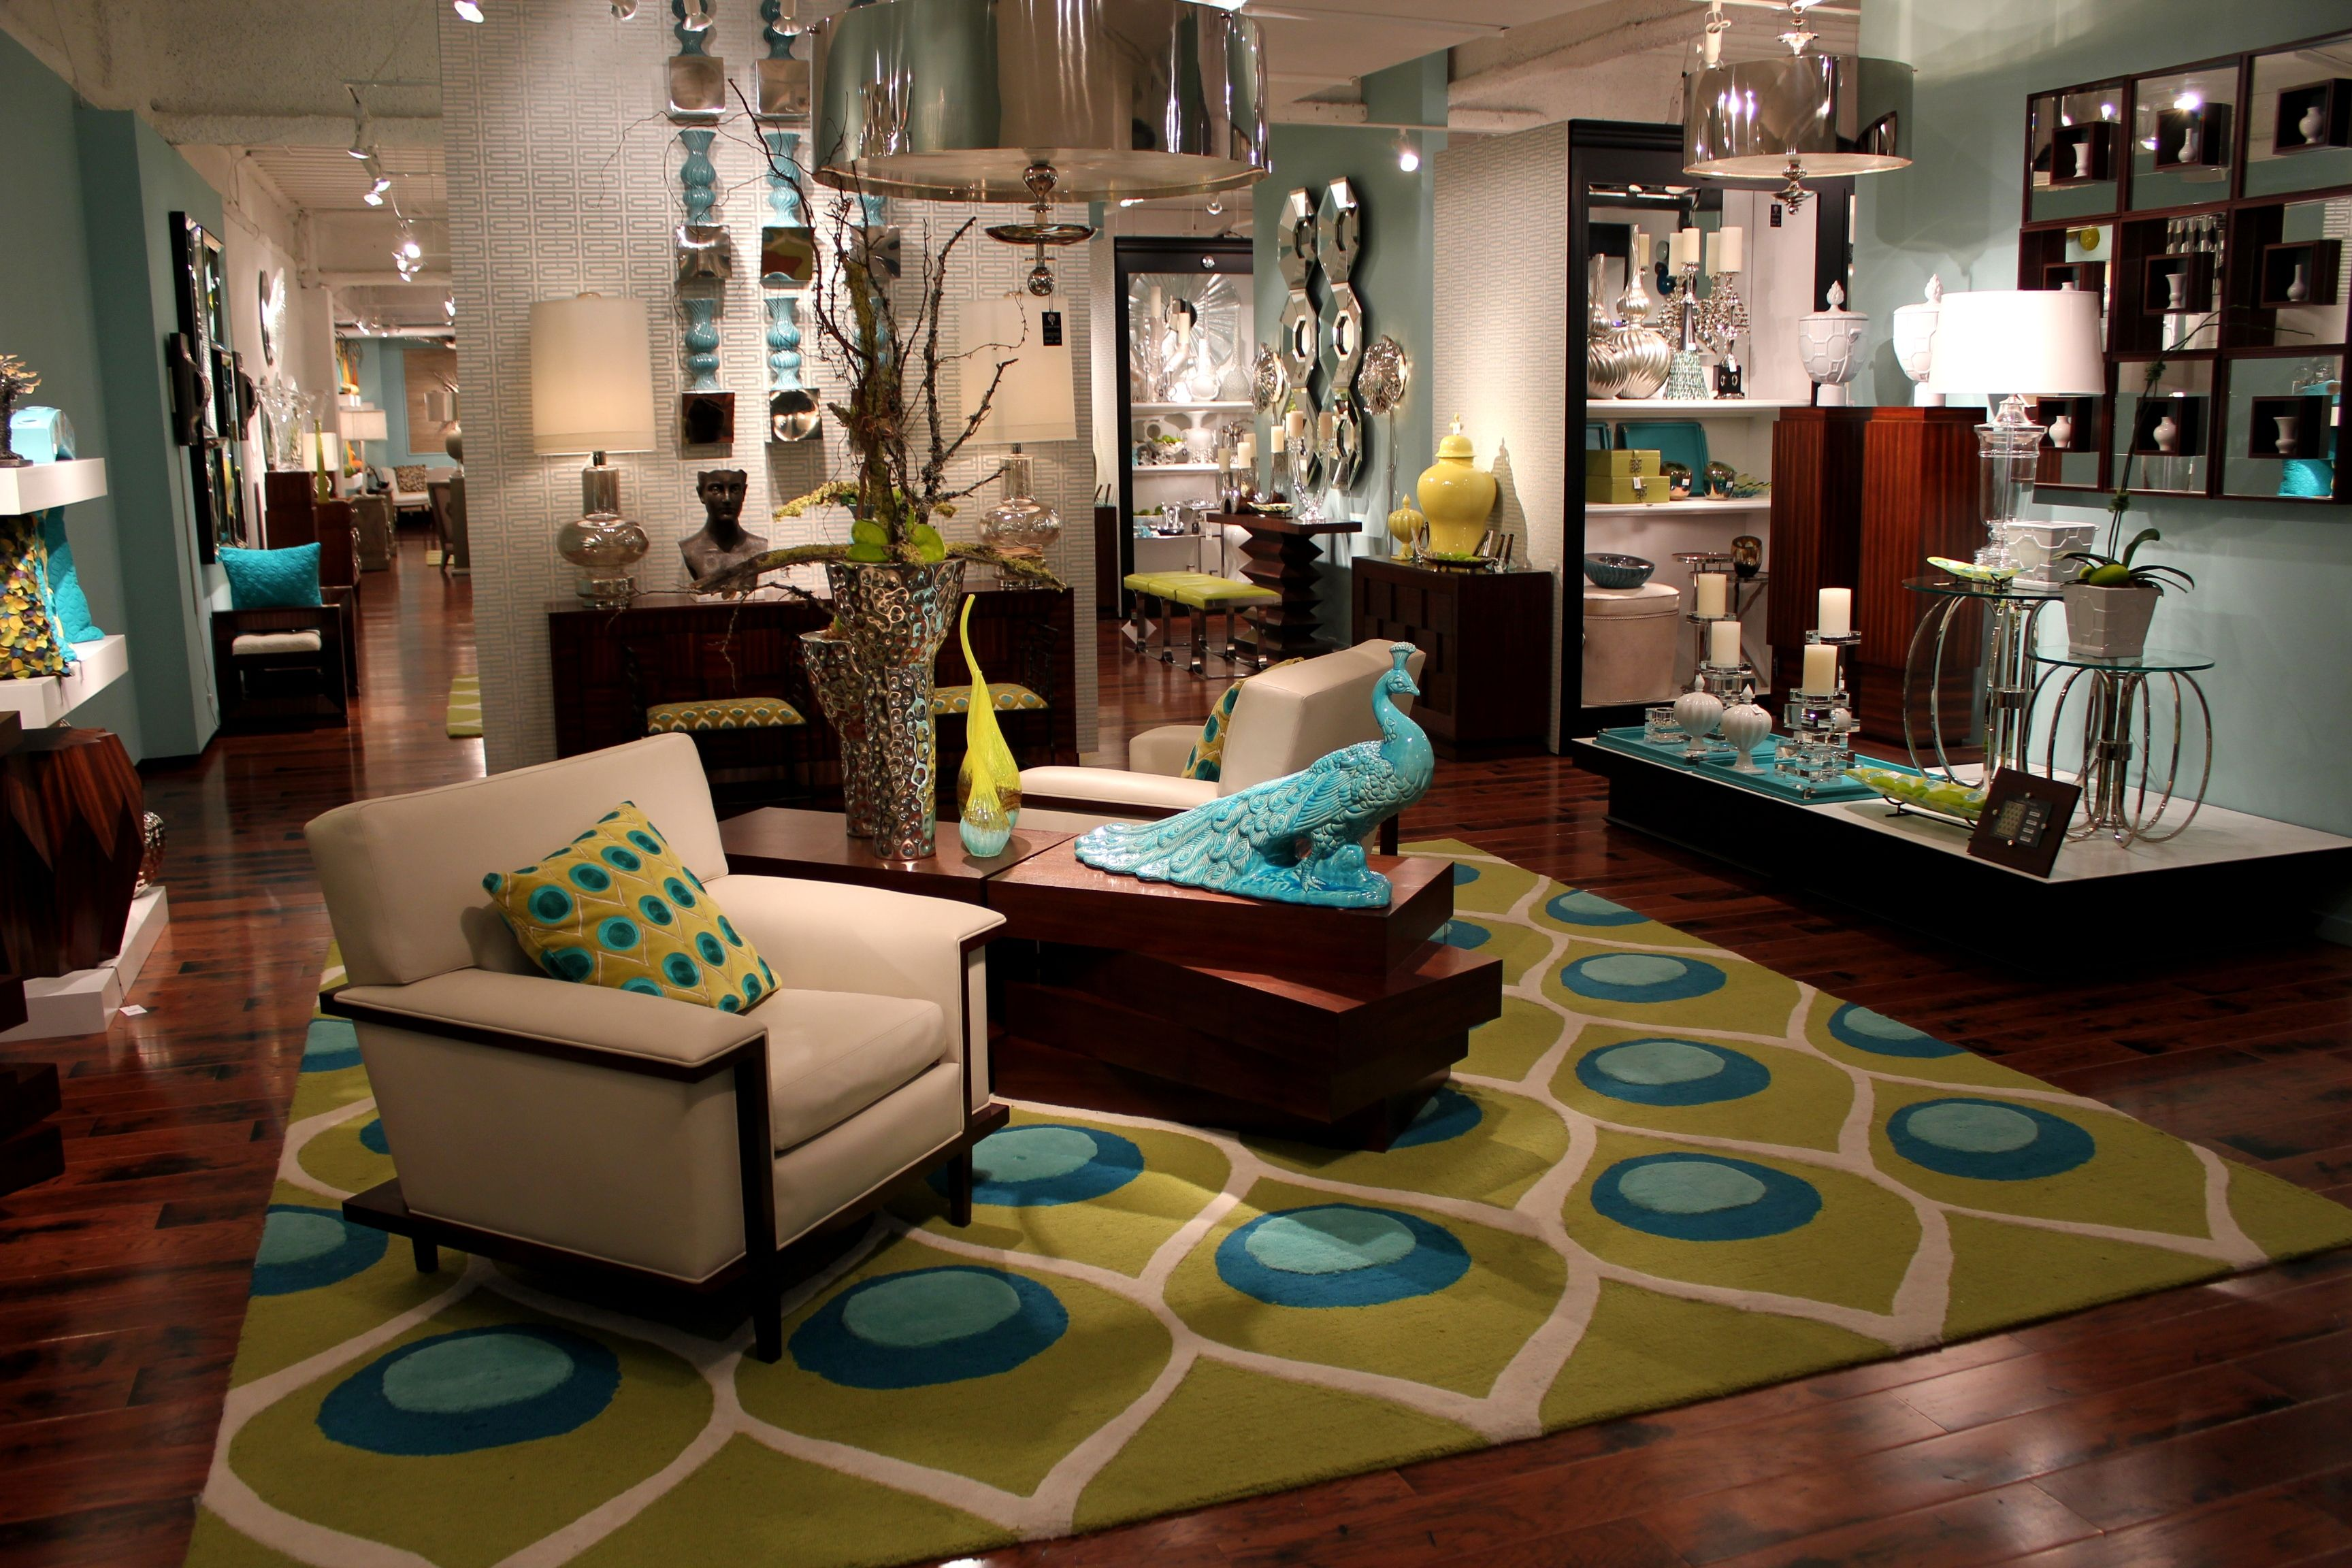 c dallas j designers douglas inspirations gallery interior design